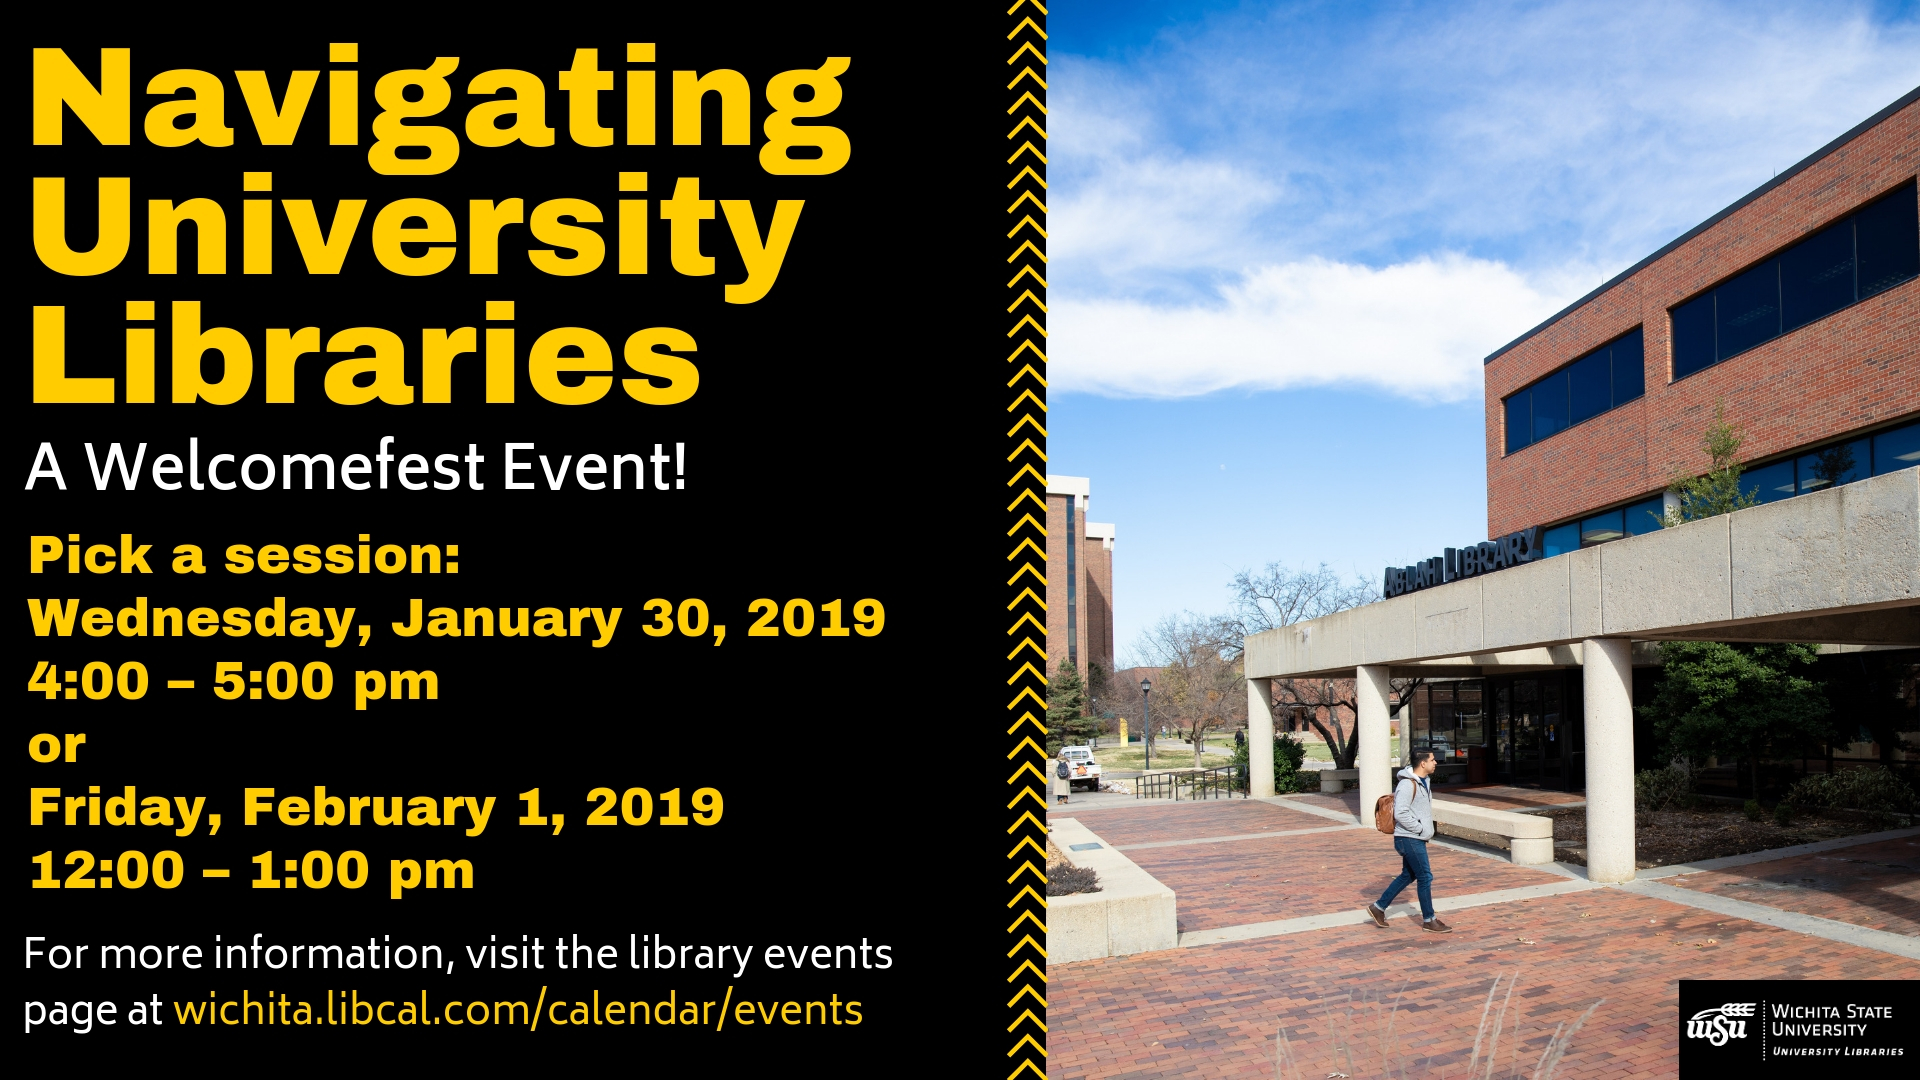 Navigating University Libraries: A Welcomefest Event!